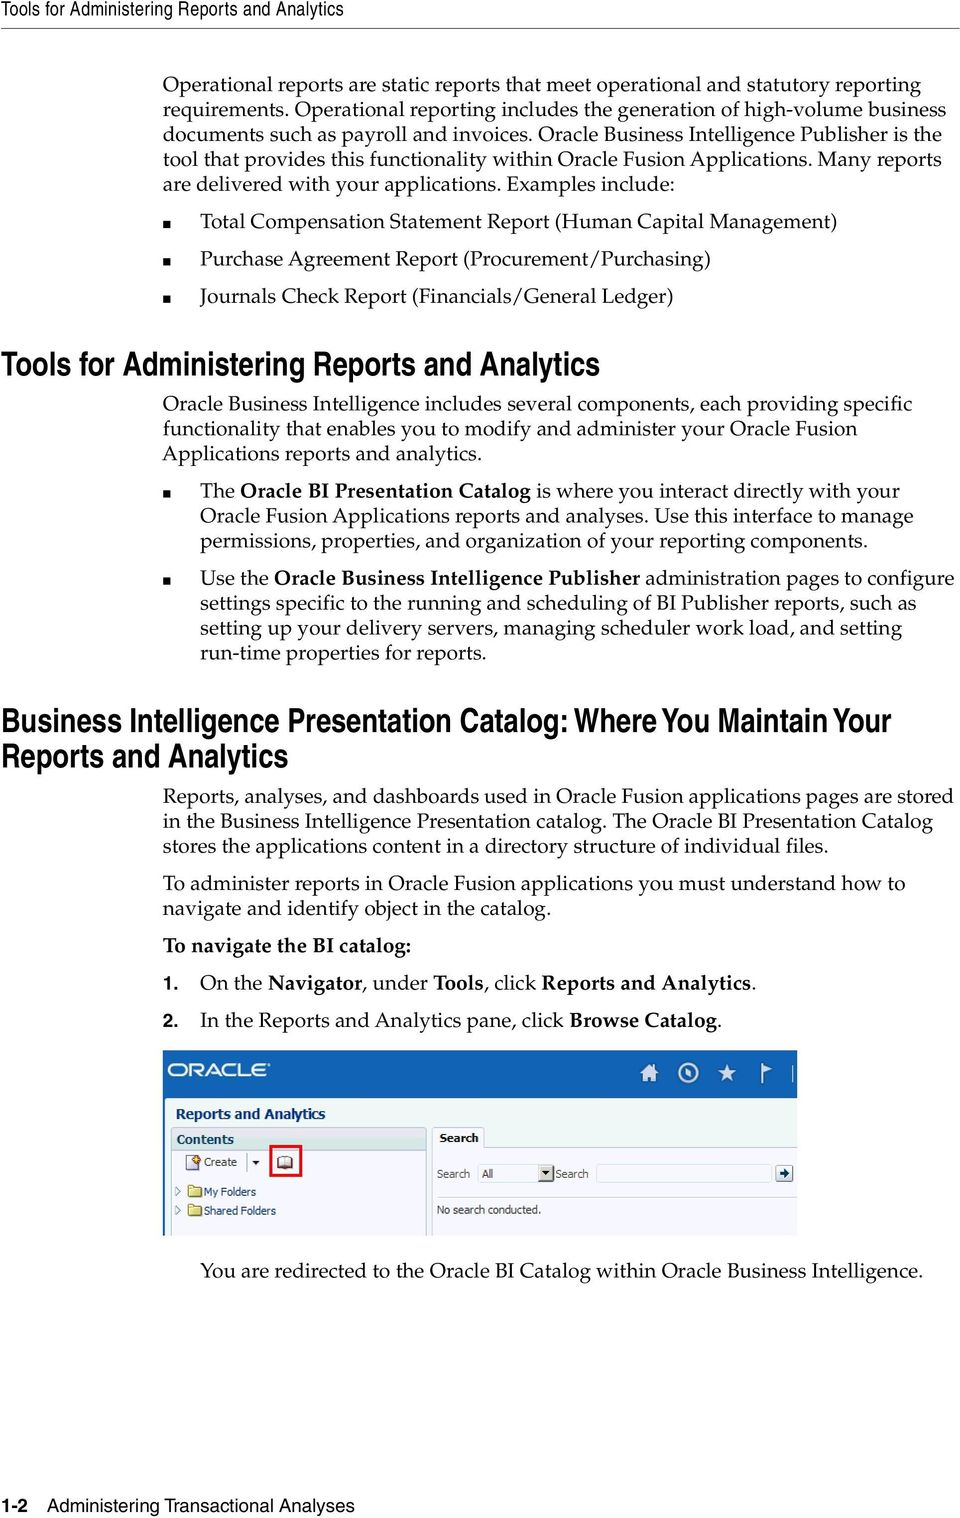 Oracle Business Intelligence Publisher is the tool that provides this functionality within Oracle Fusion Applications. Many reports are delivered with your applications.